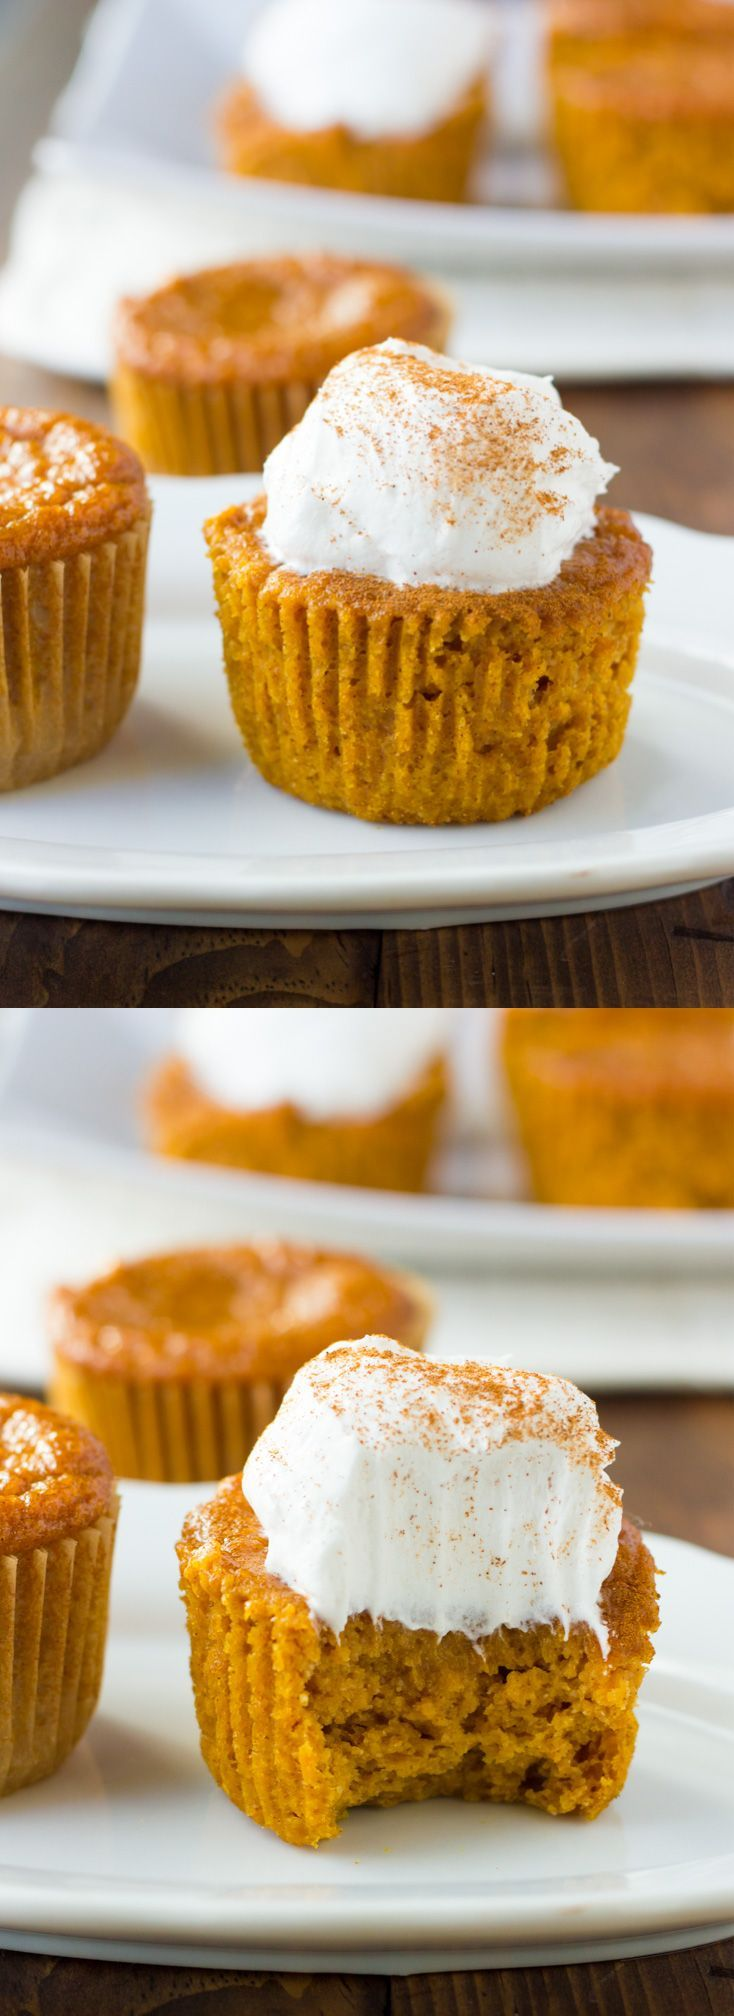 Gluten-Free Crustless Pumpkin Pie Cupcakes! So easy to make and perfect for…